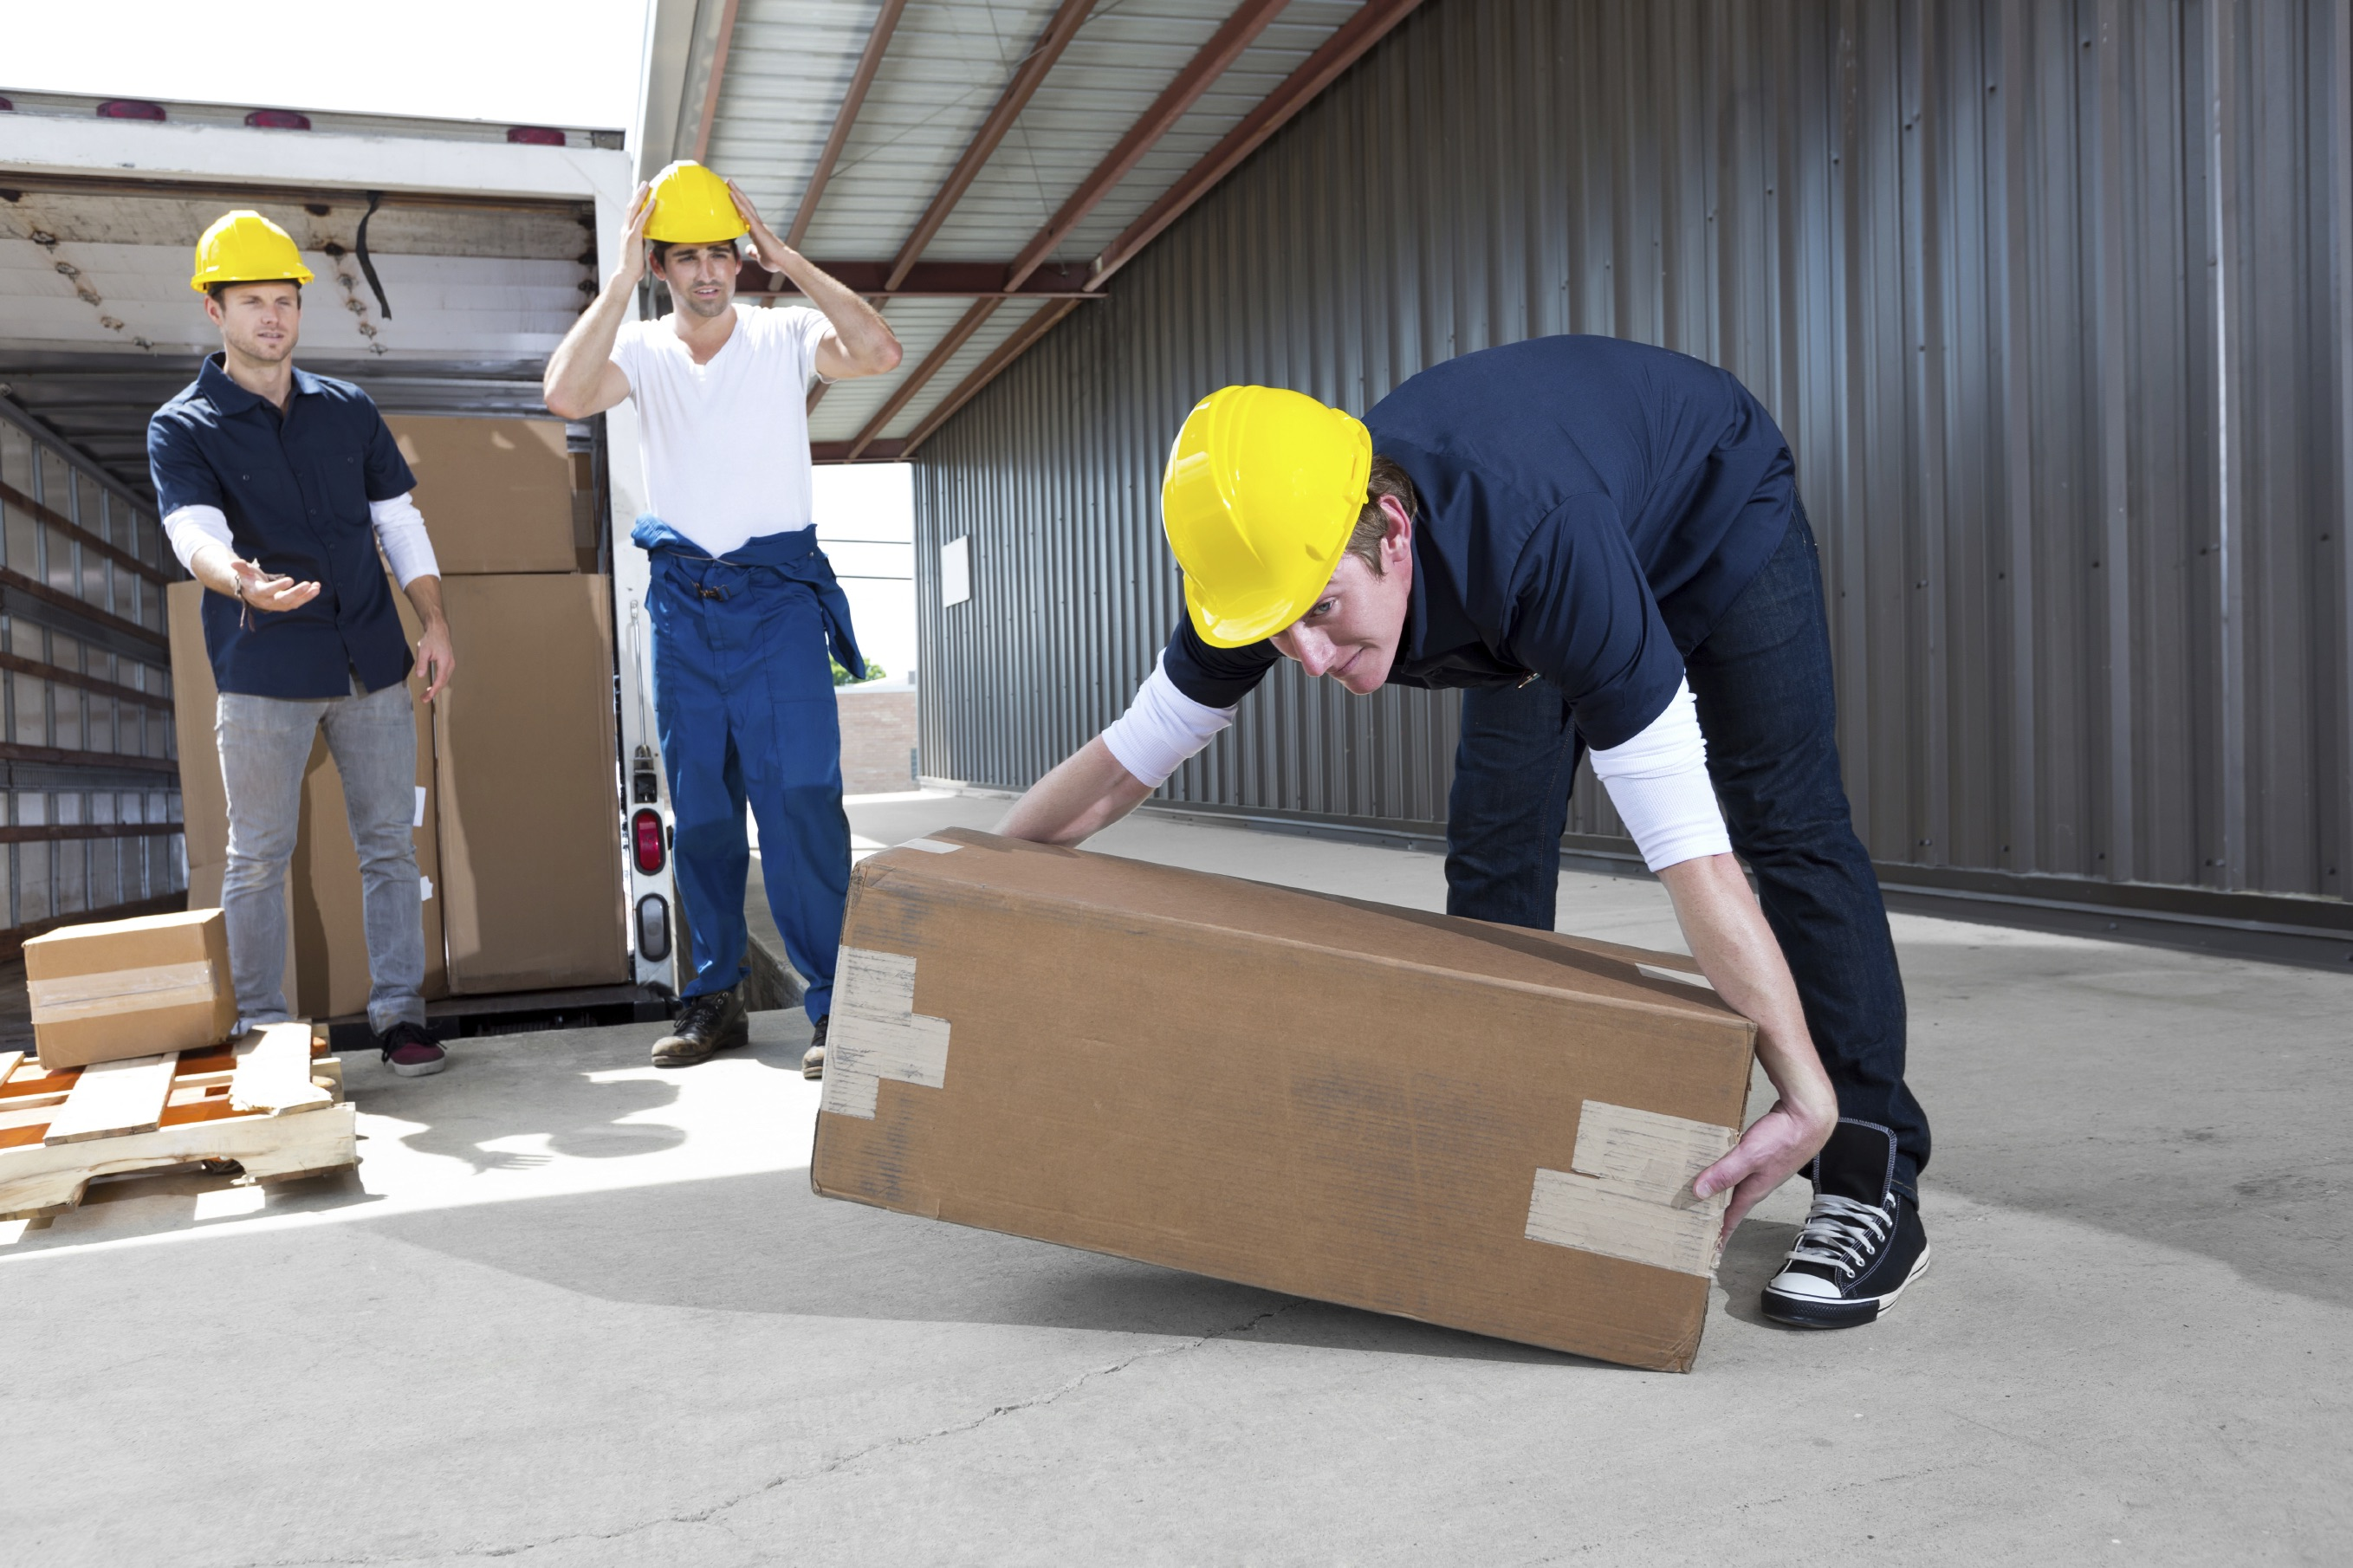 accident at workplace With hundreds of thousands of accidents in workplaces every year, here are 10 common injuries that businesses should watch out for.